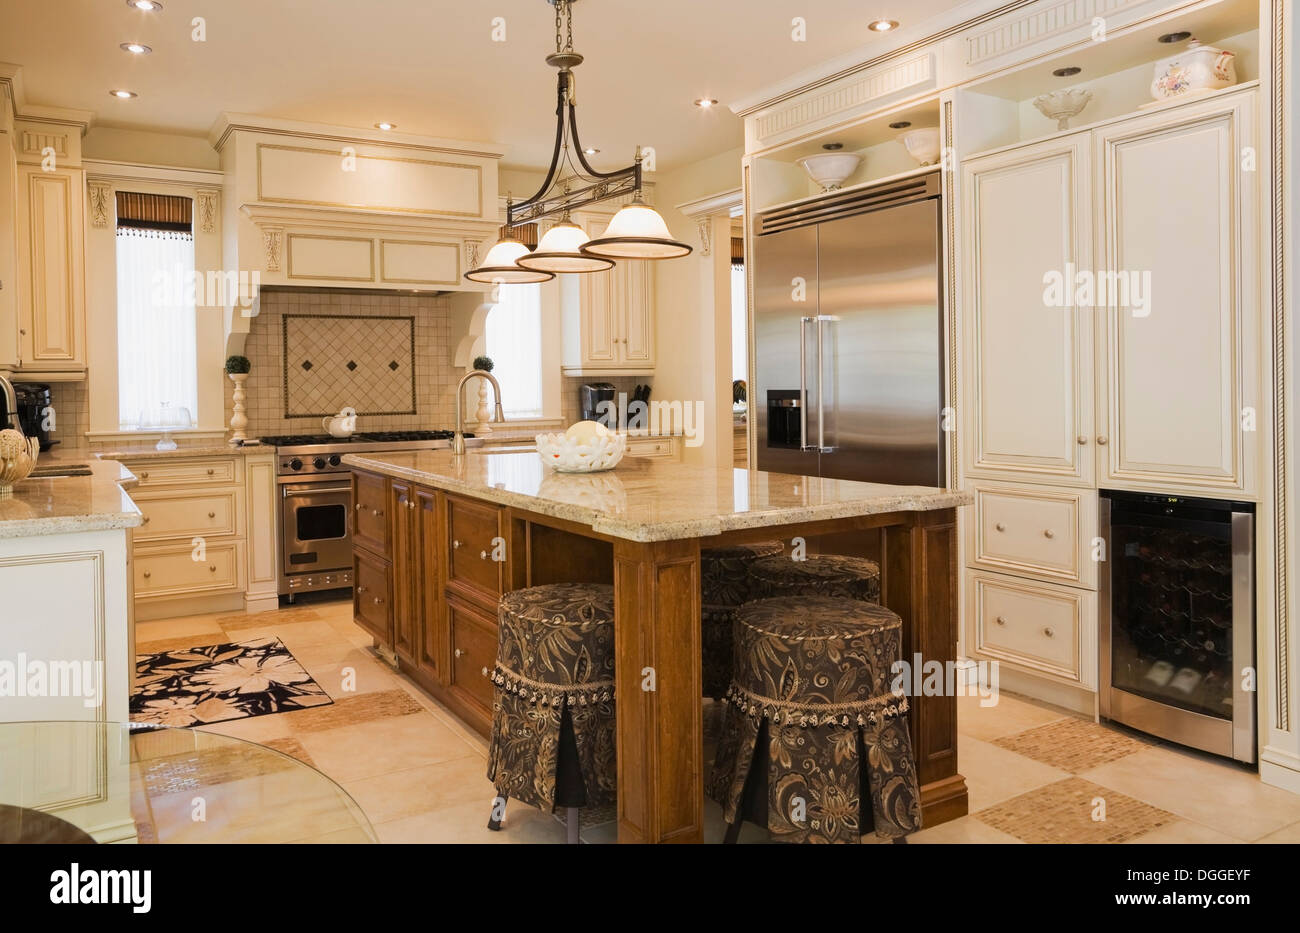 Traditionally styled kitchen with tiled floor - Stock Image